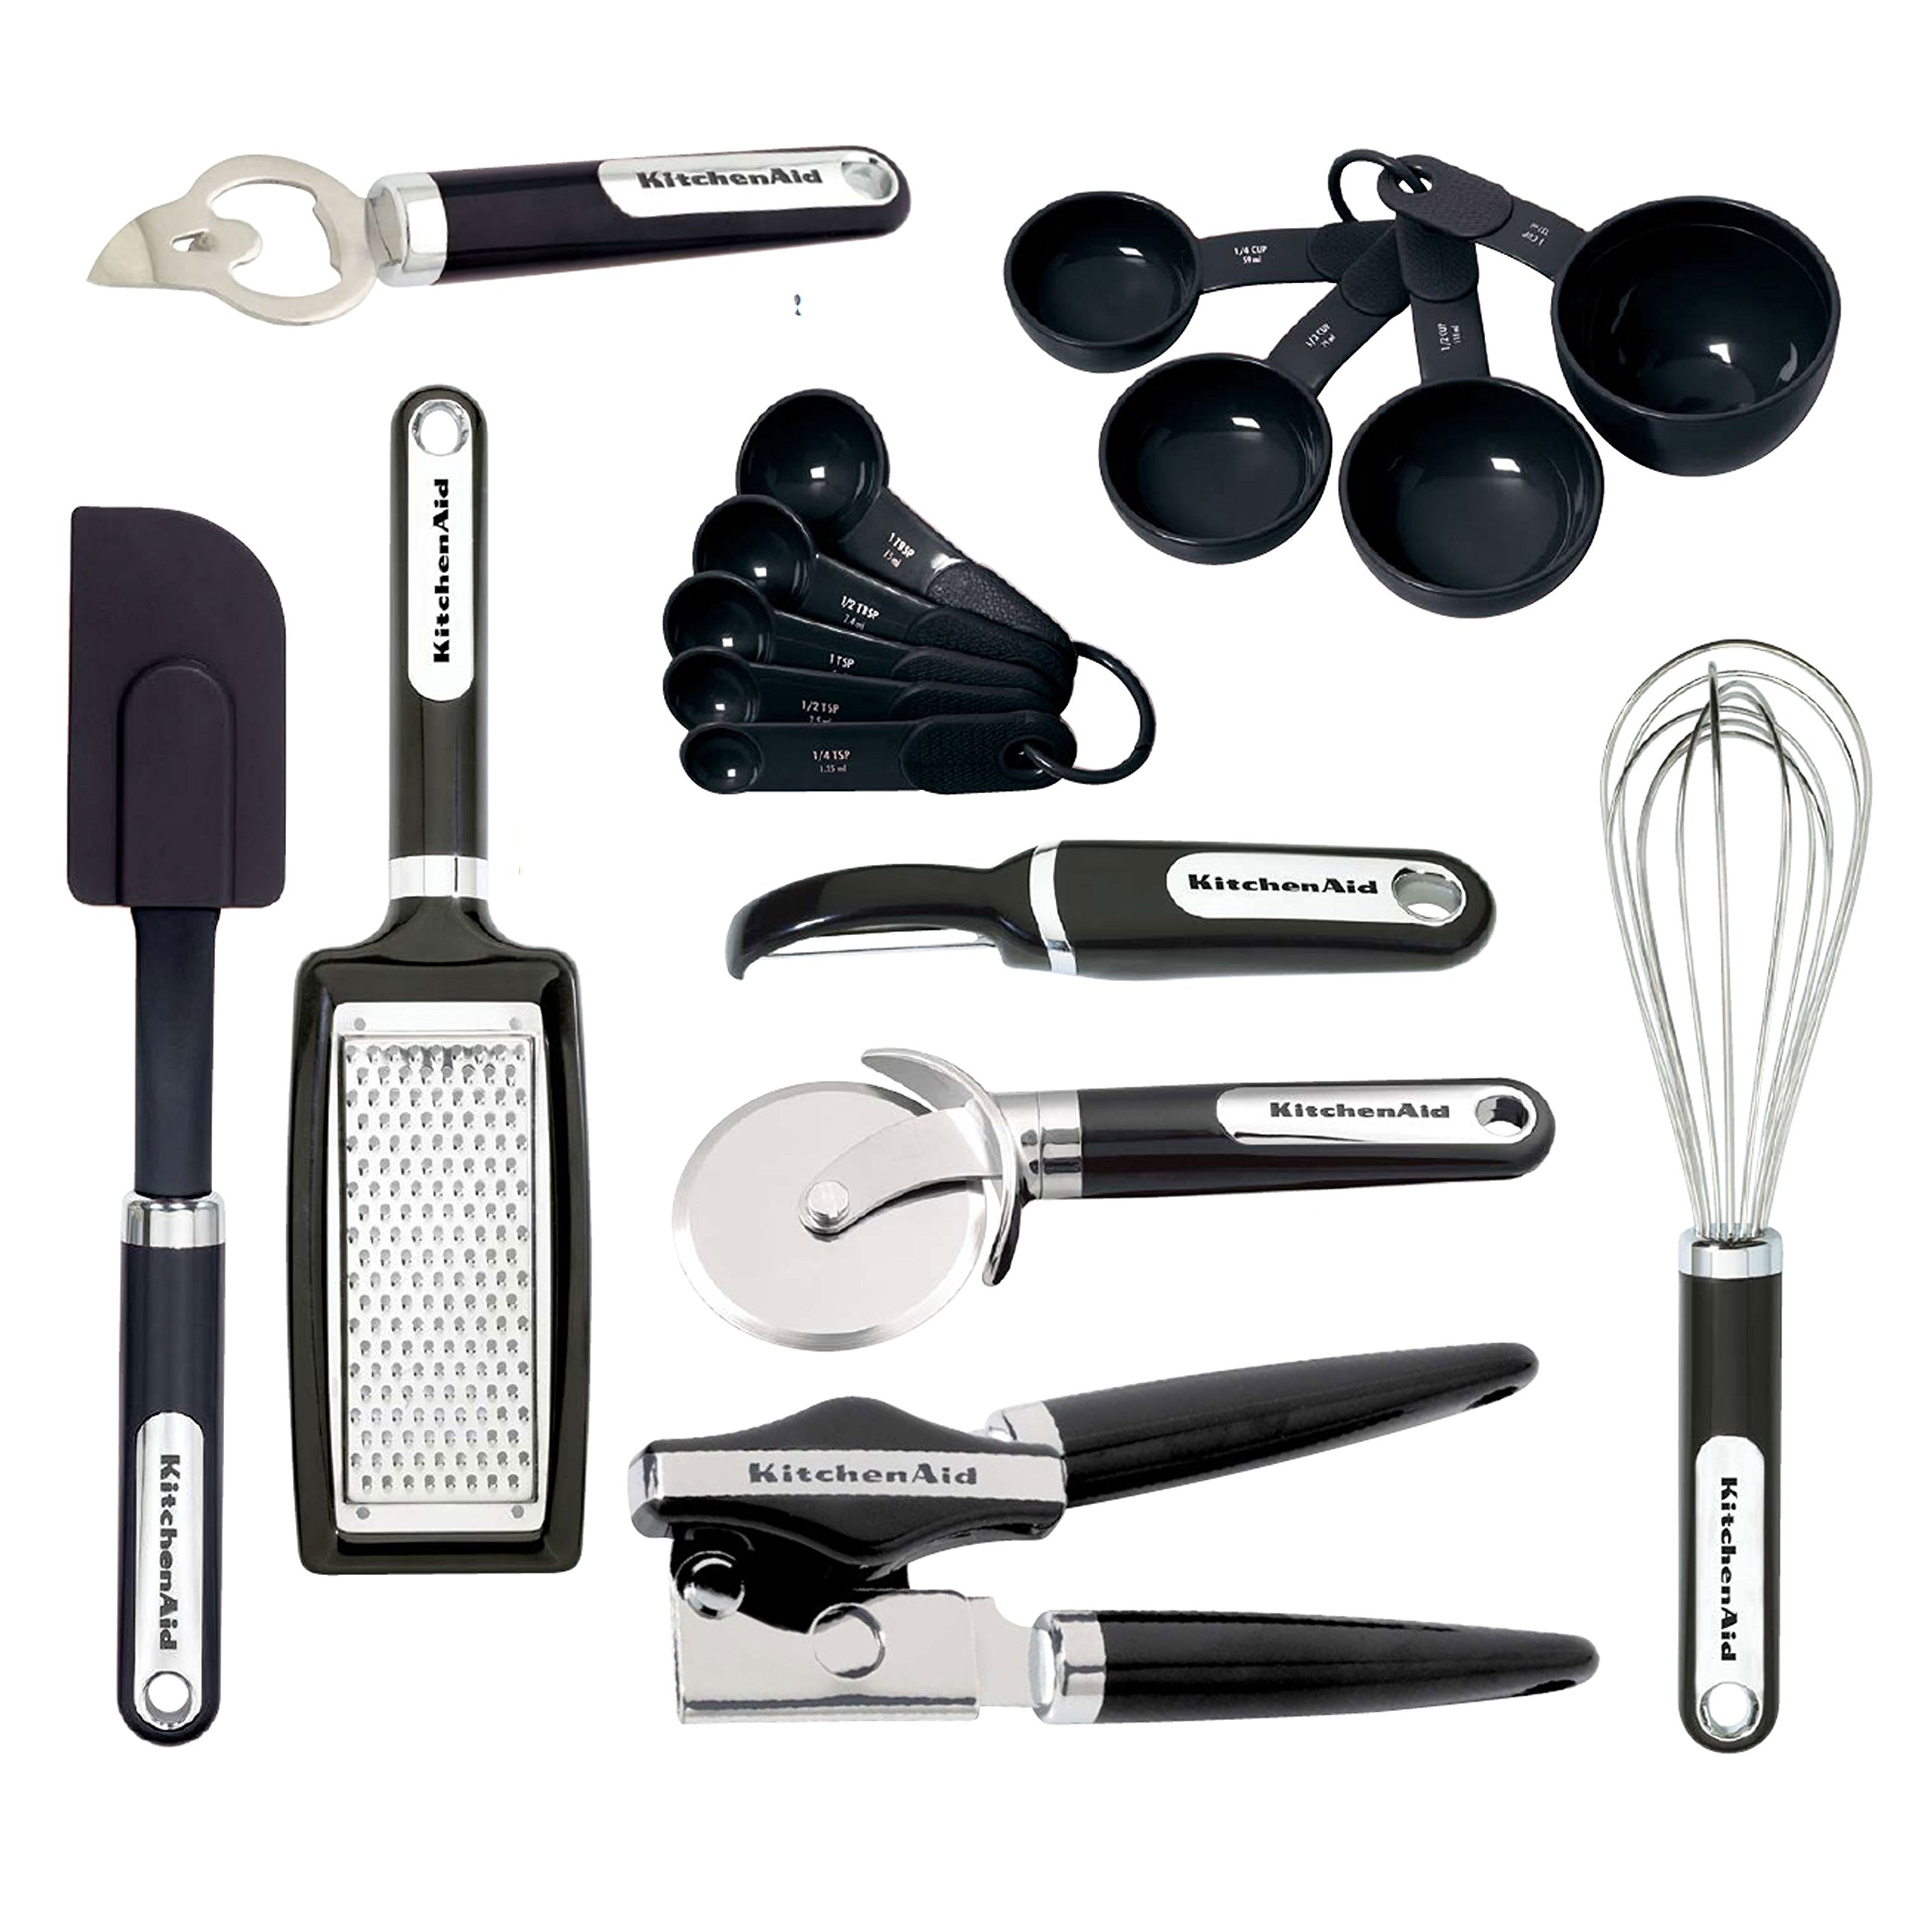 KitchenAid 16-Piece Essential Gadget Set, Black